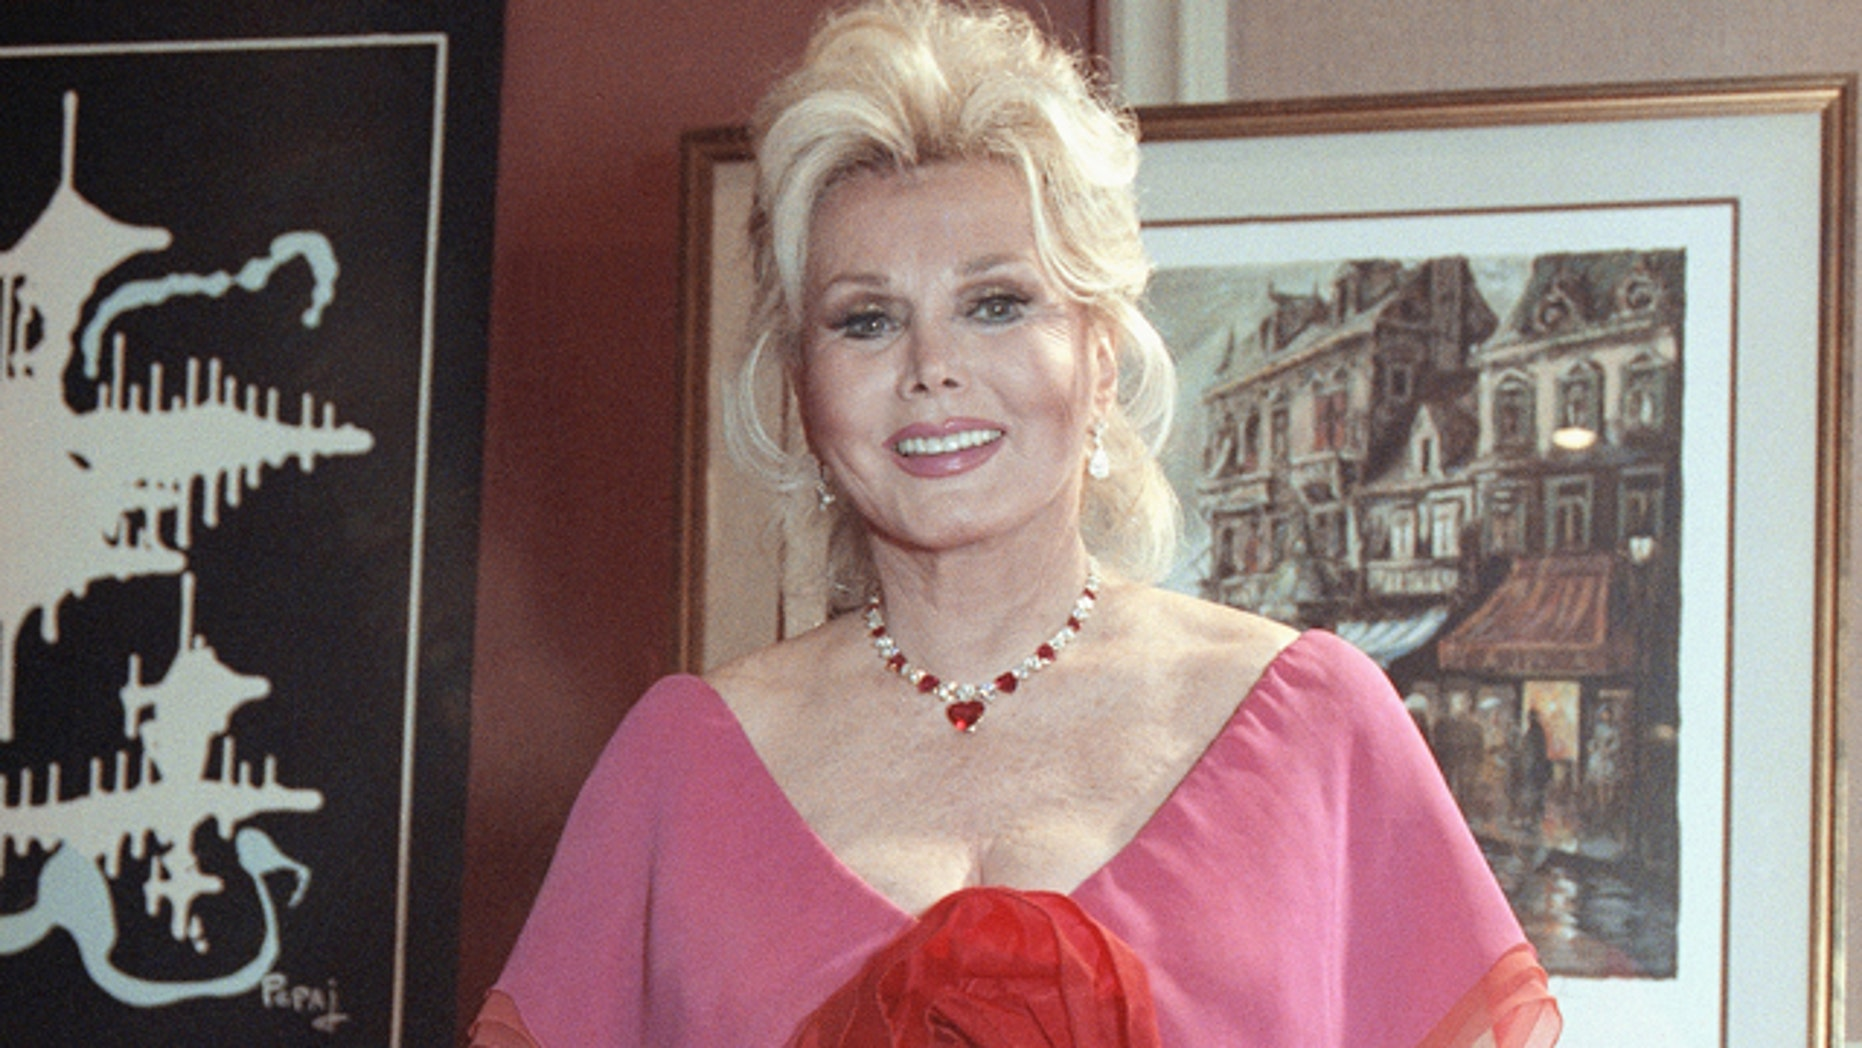 June 8, 1990: Zsa Zsa Gabor smiles at a charity auction in Beverly Hills, Calif.